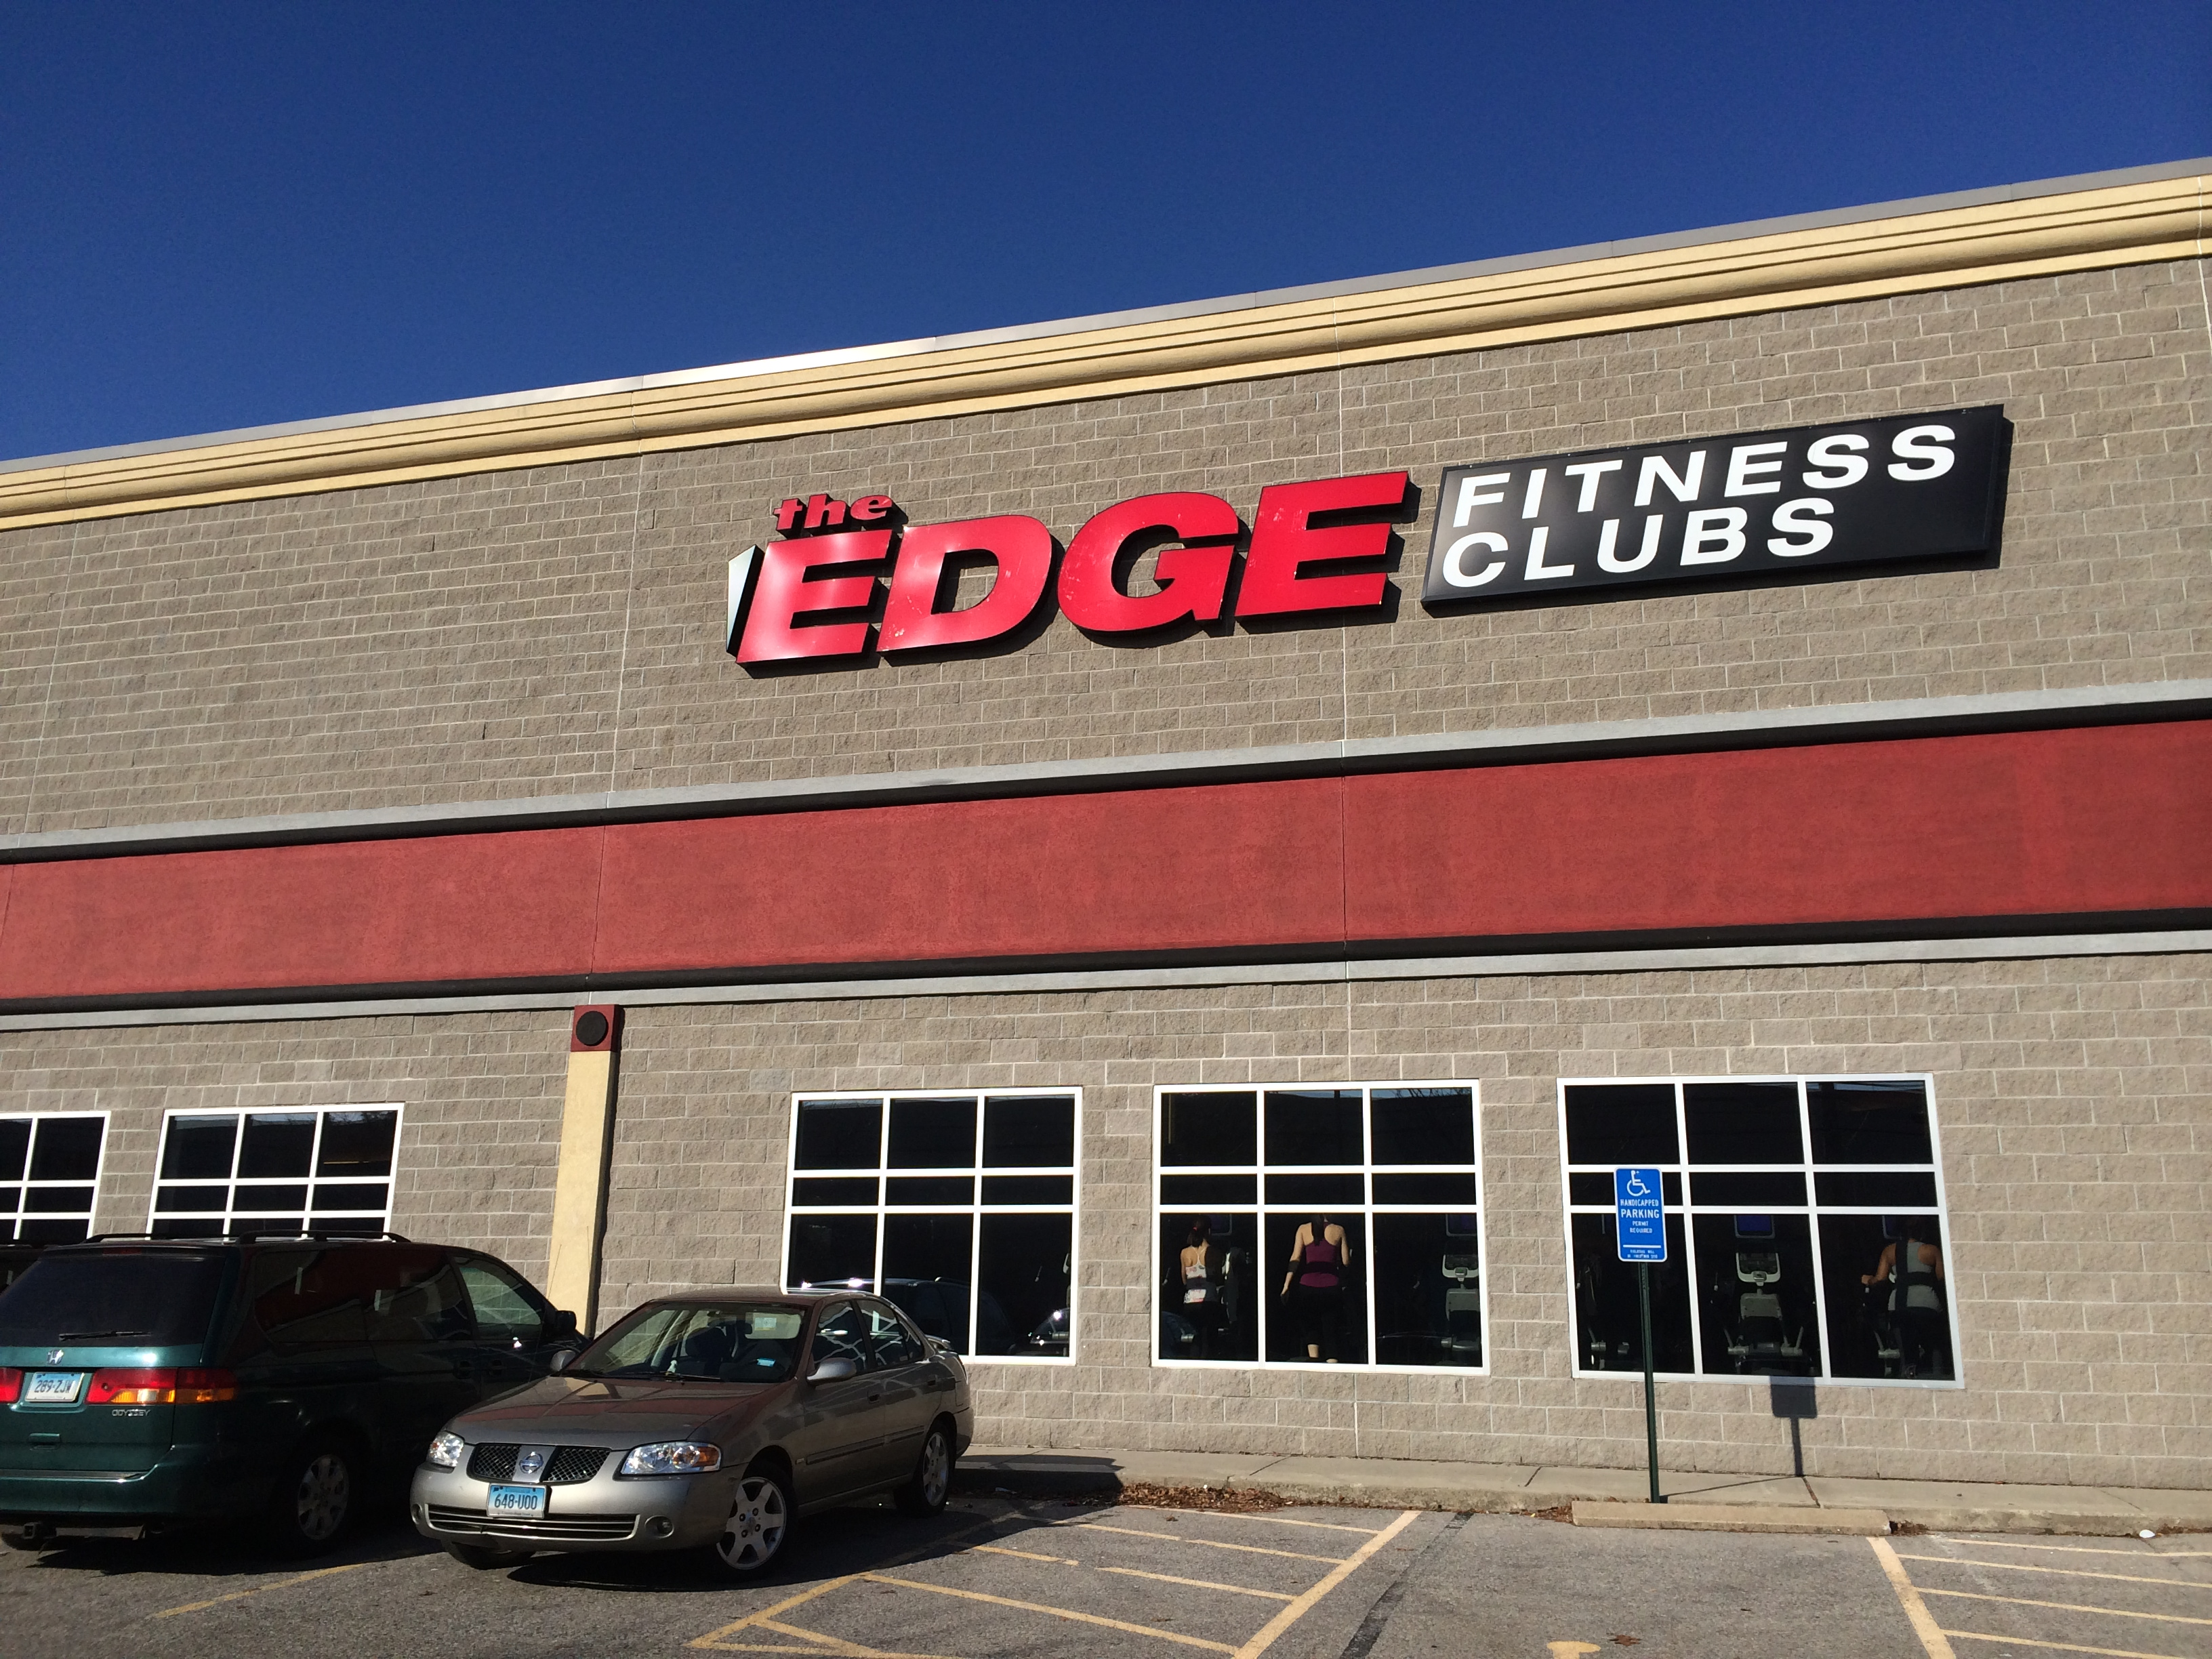 The Fairfield Edge Fitness Club on Kings Highway Cutoff has experienced a rash of thefts from cars in its parking lot.